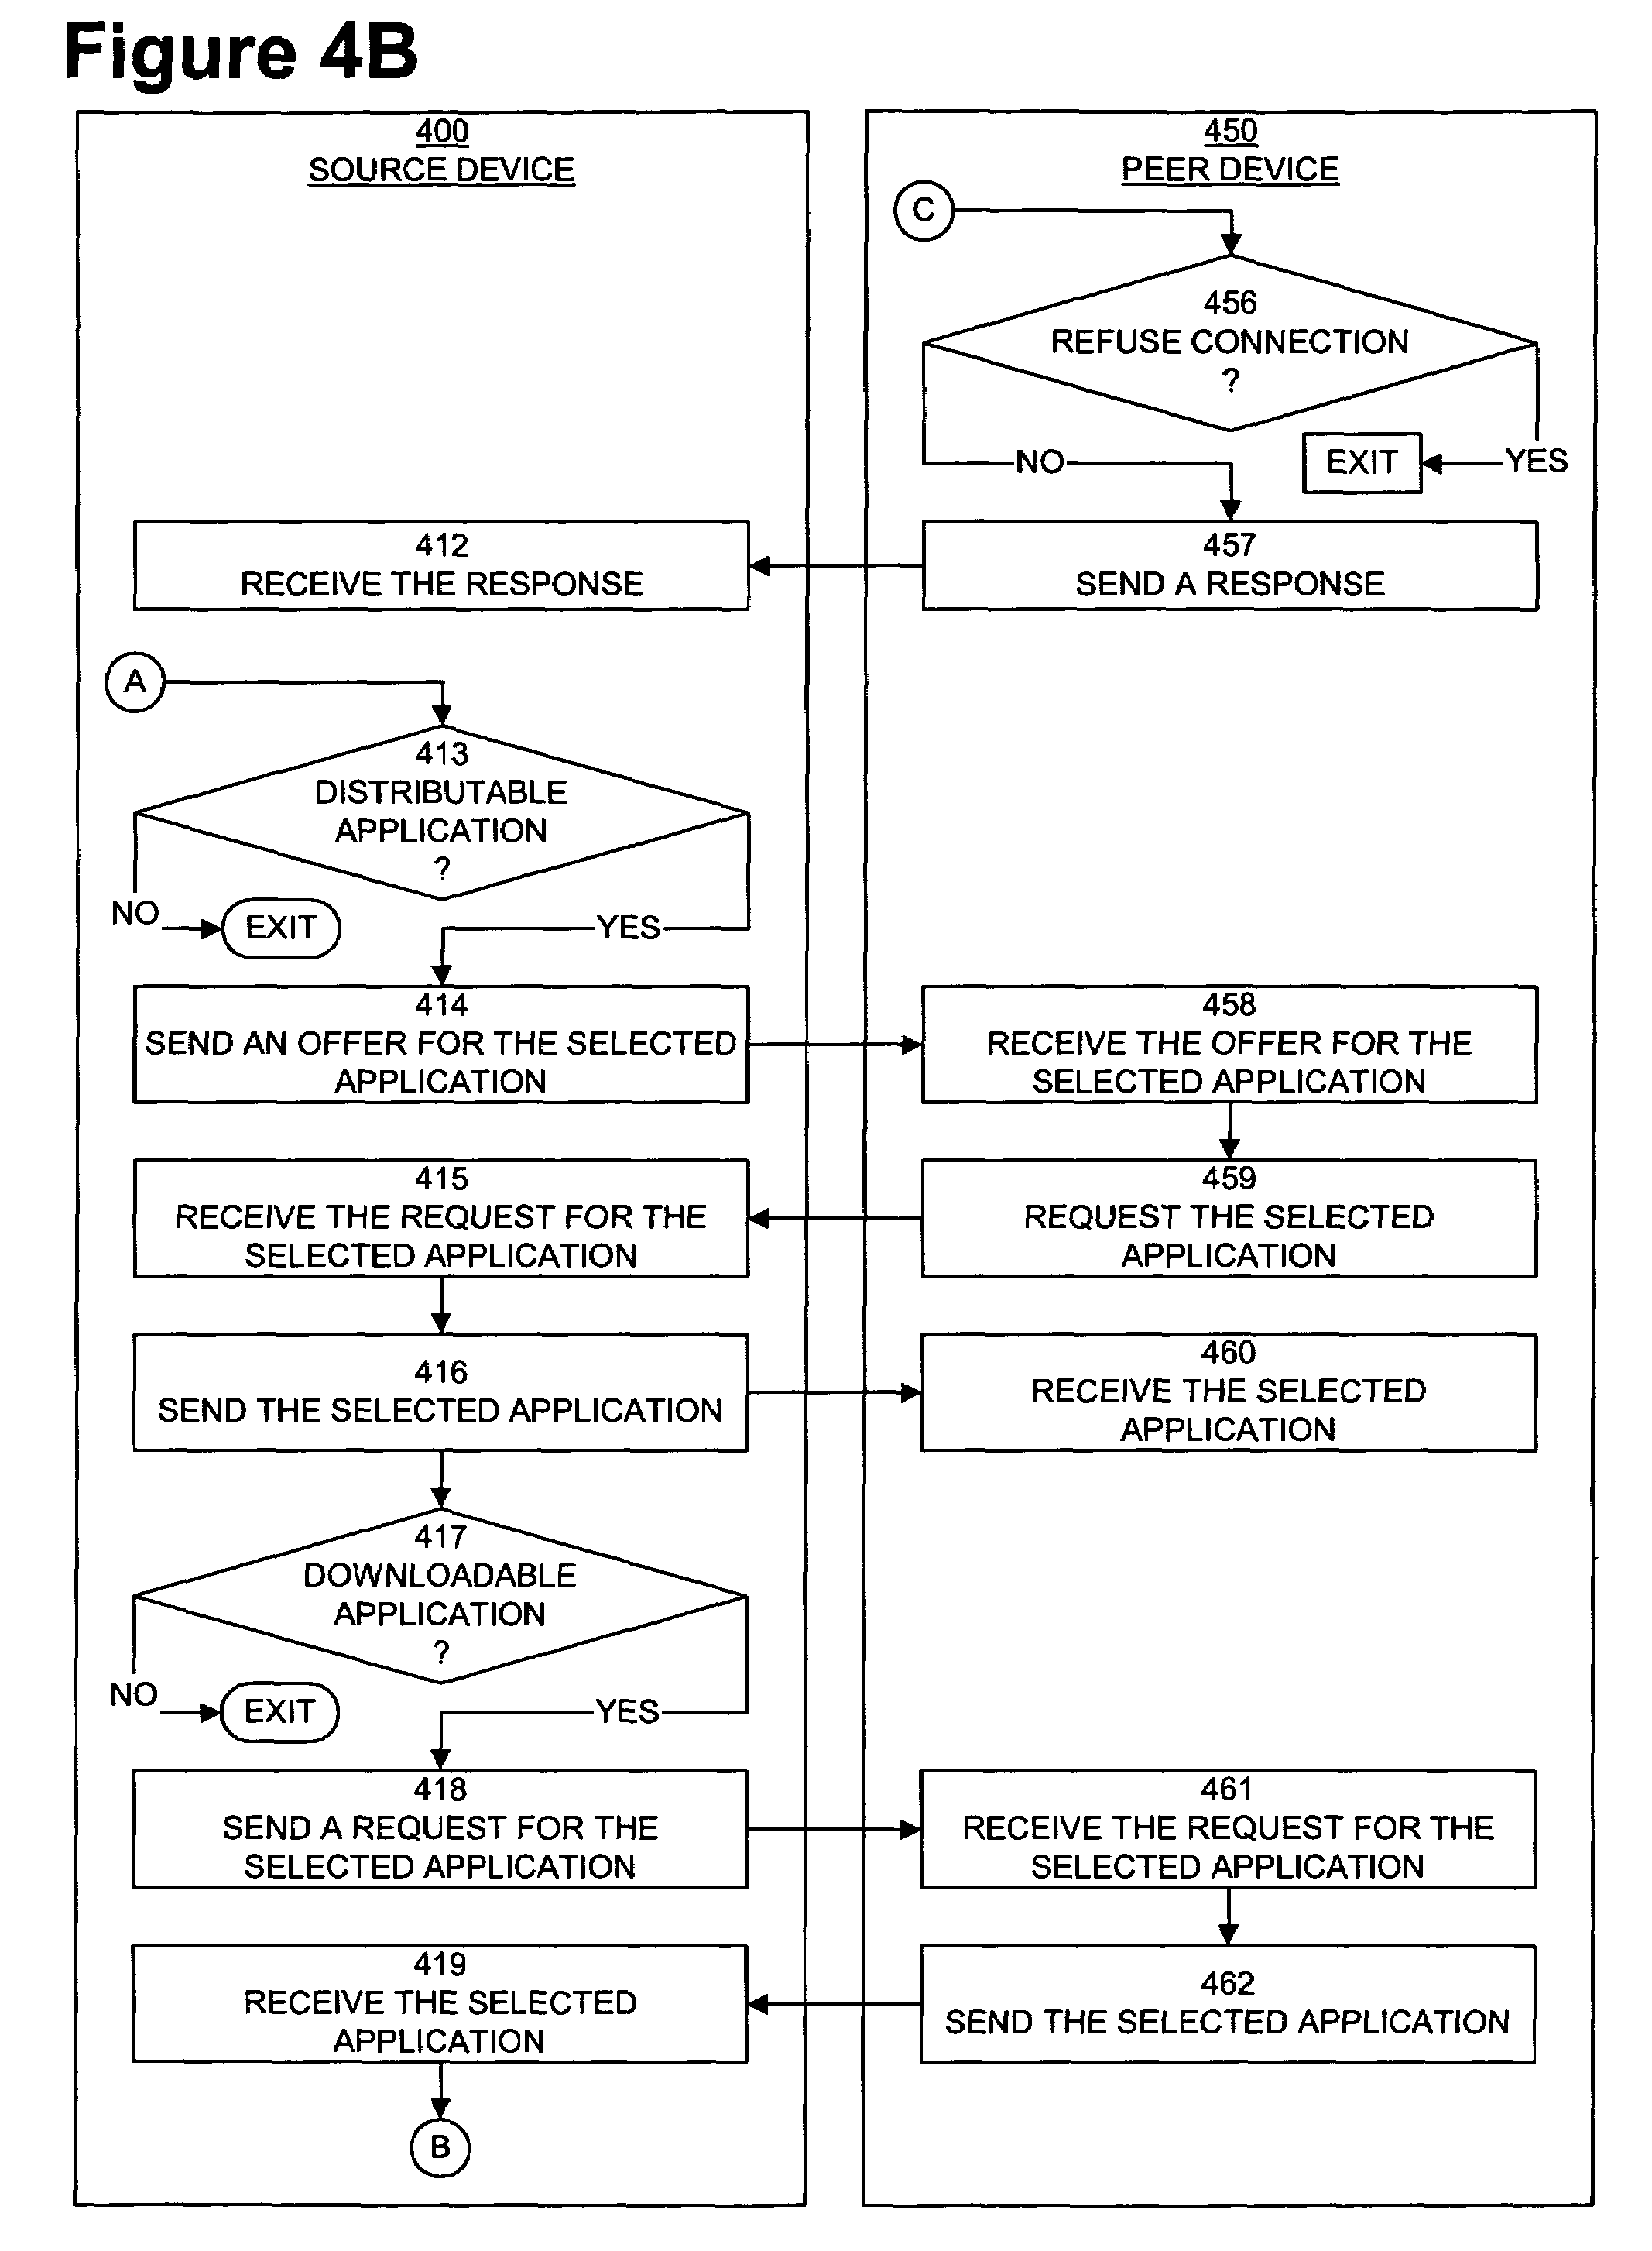 peer-to-peer applications and services in ad hoc networks